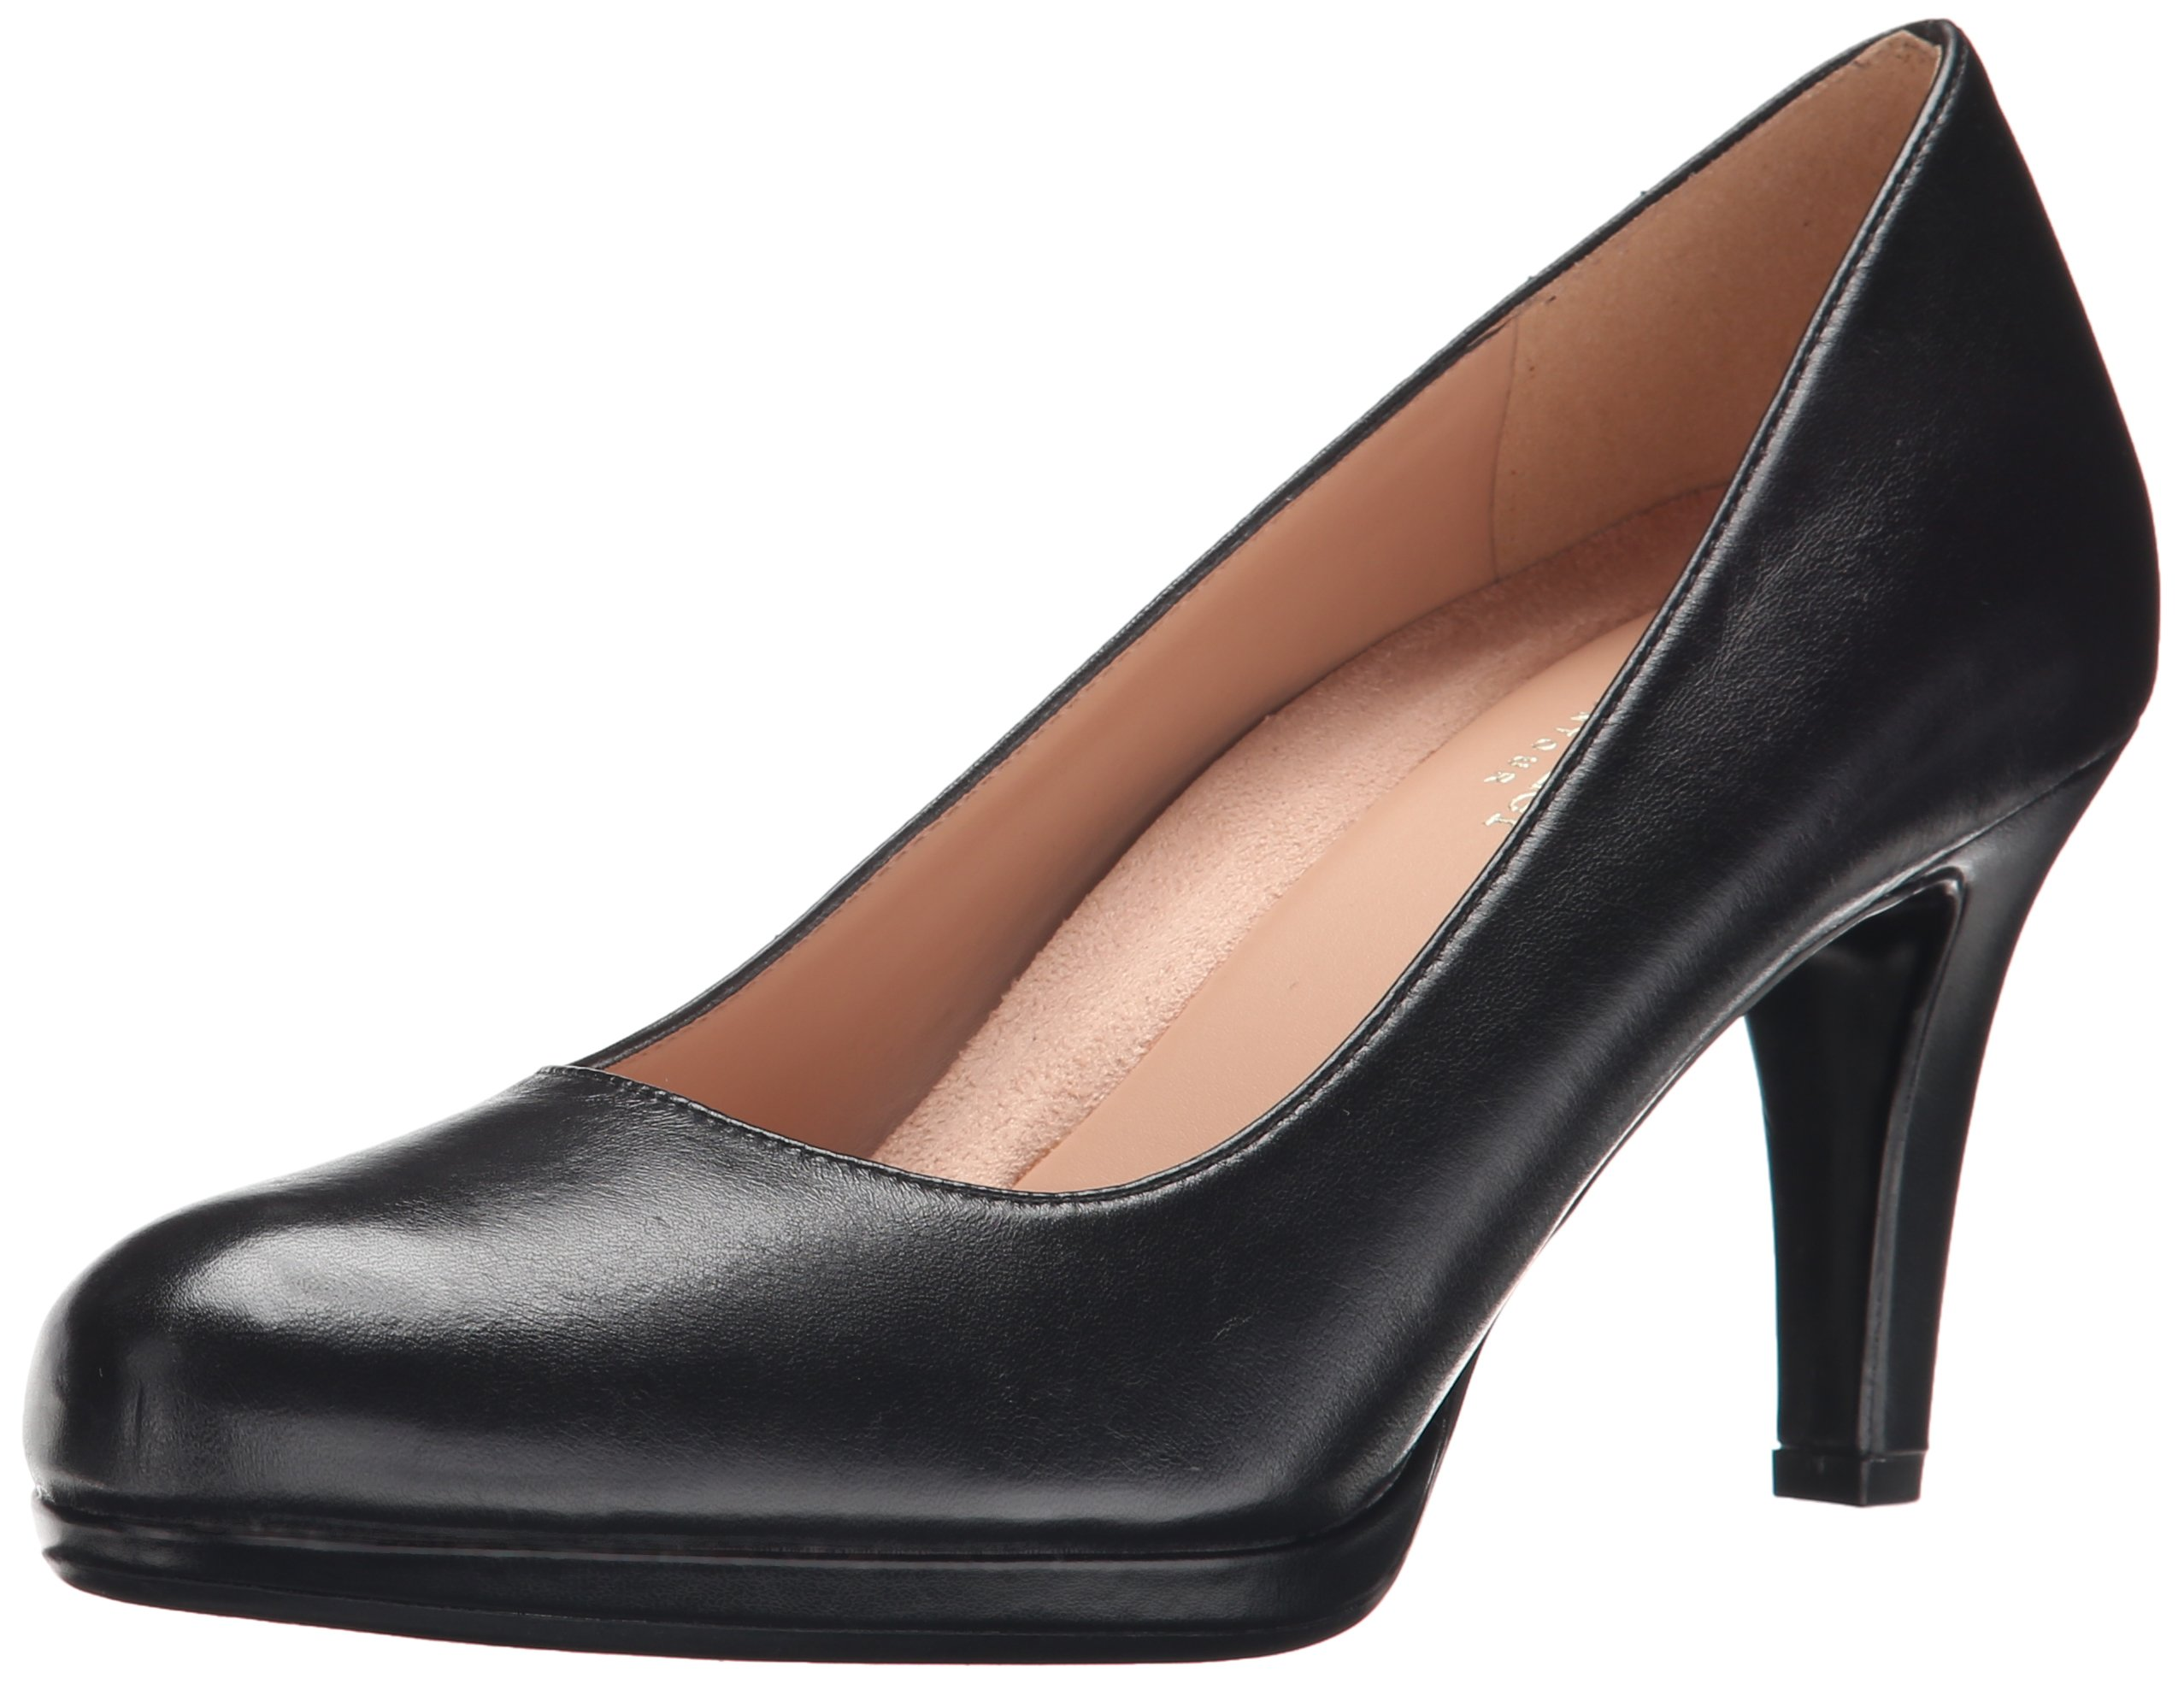 Naturalizer Women's Michelle Dress Pump, Black Leather, 8 M US